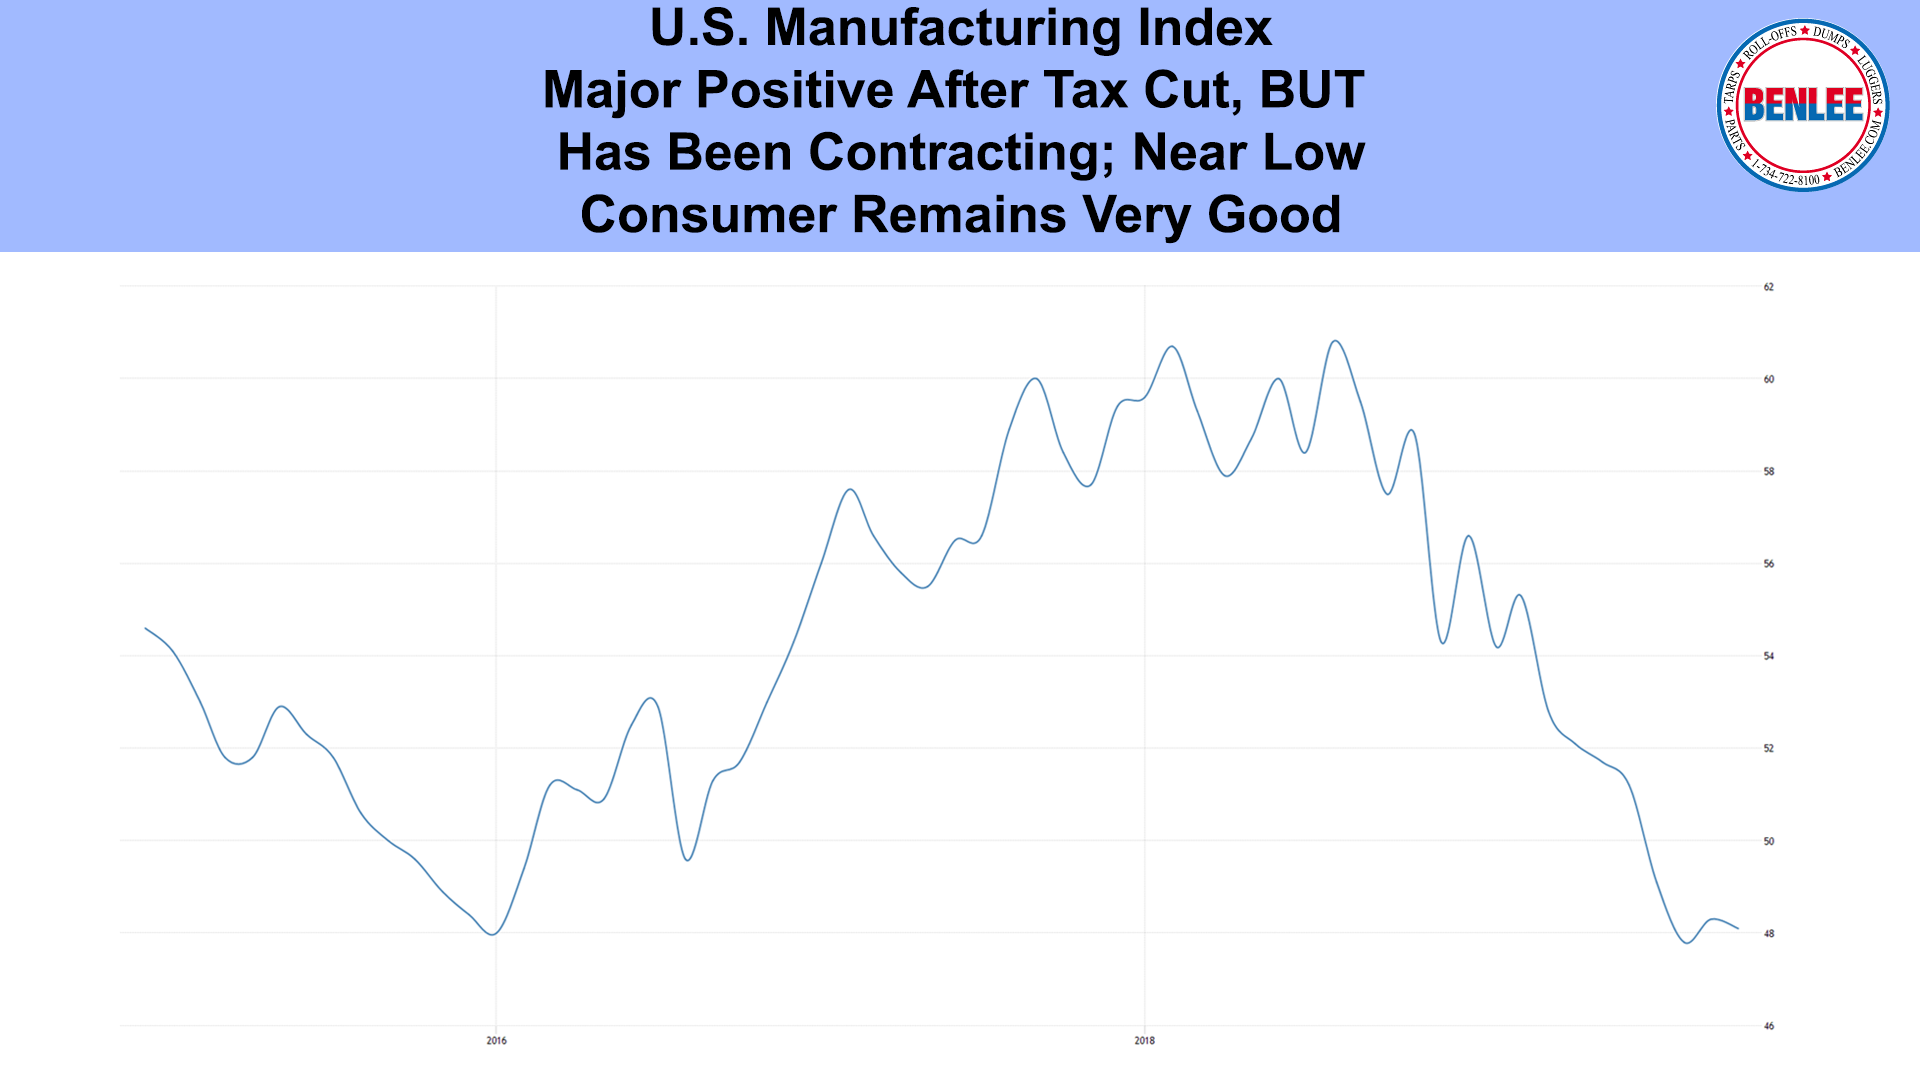 U.S. Manufacturing Index